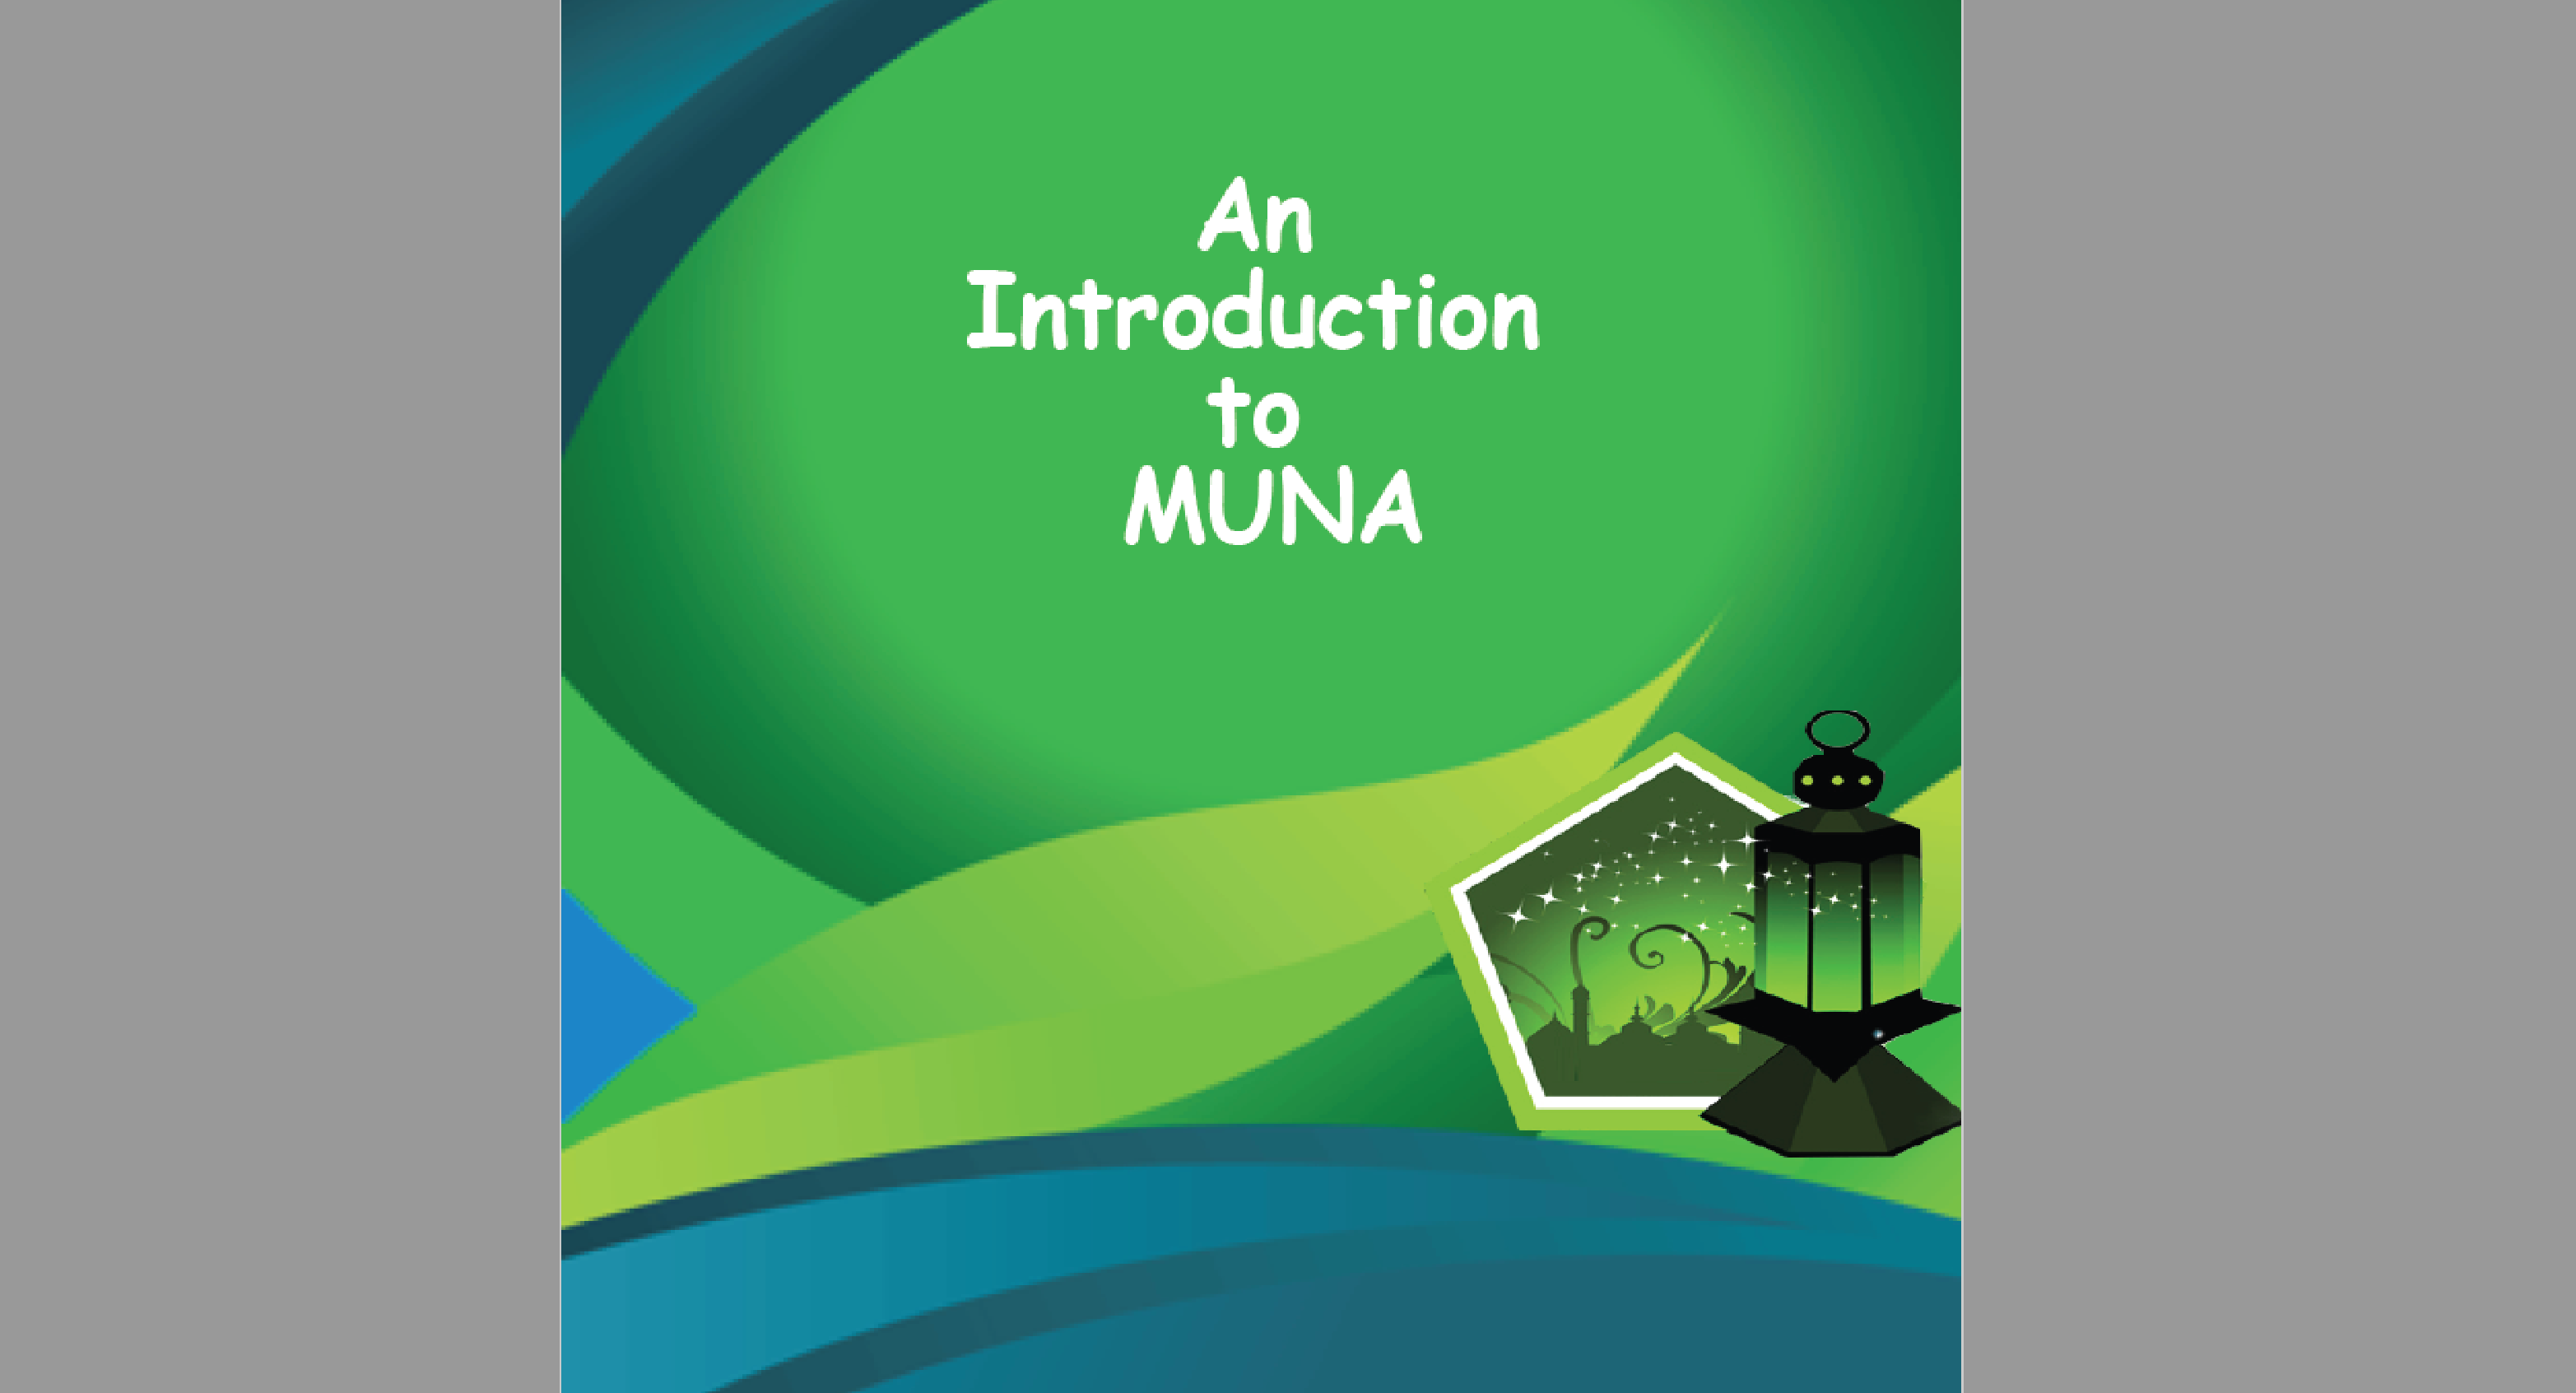 An Introduction to MUNA